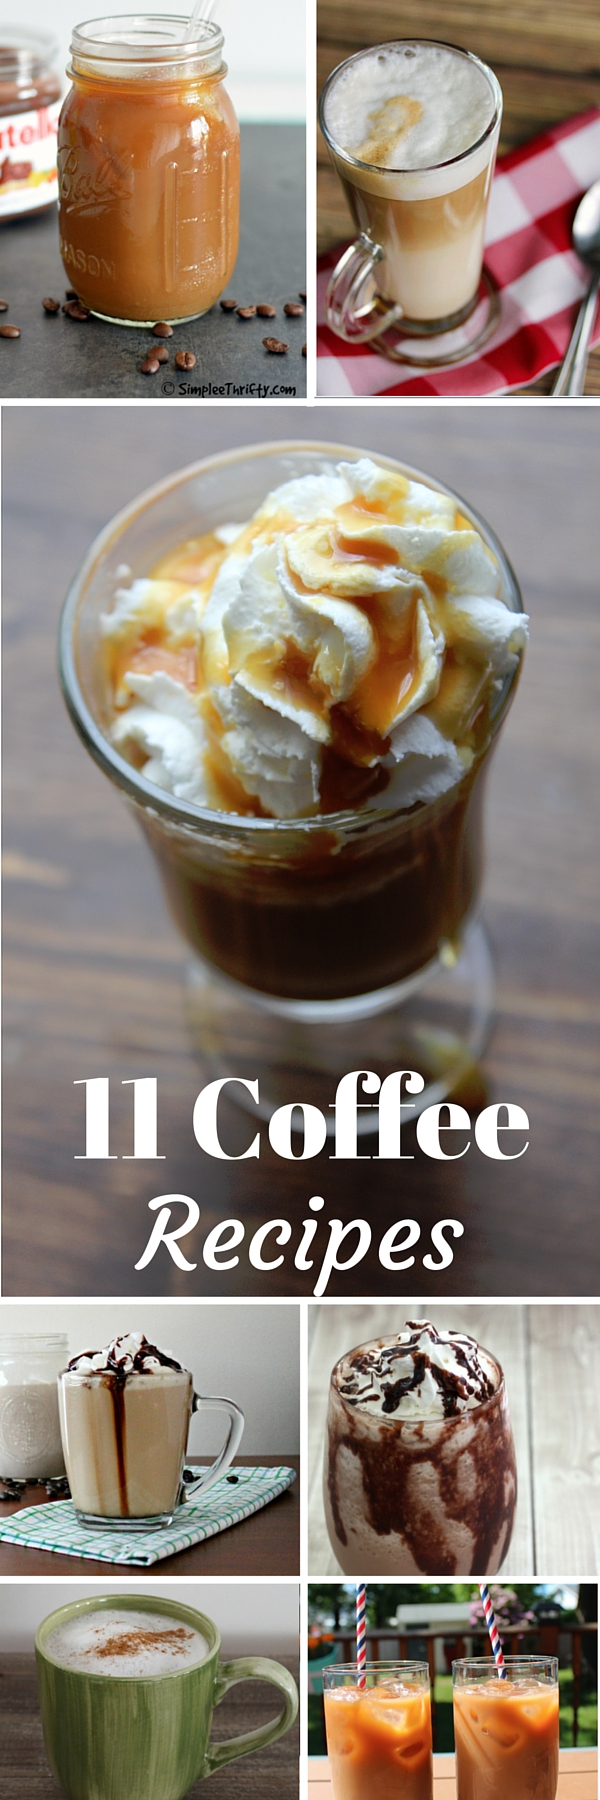 11 Homemade Coffee Recipes